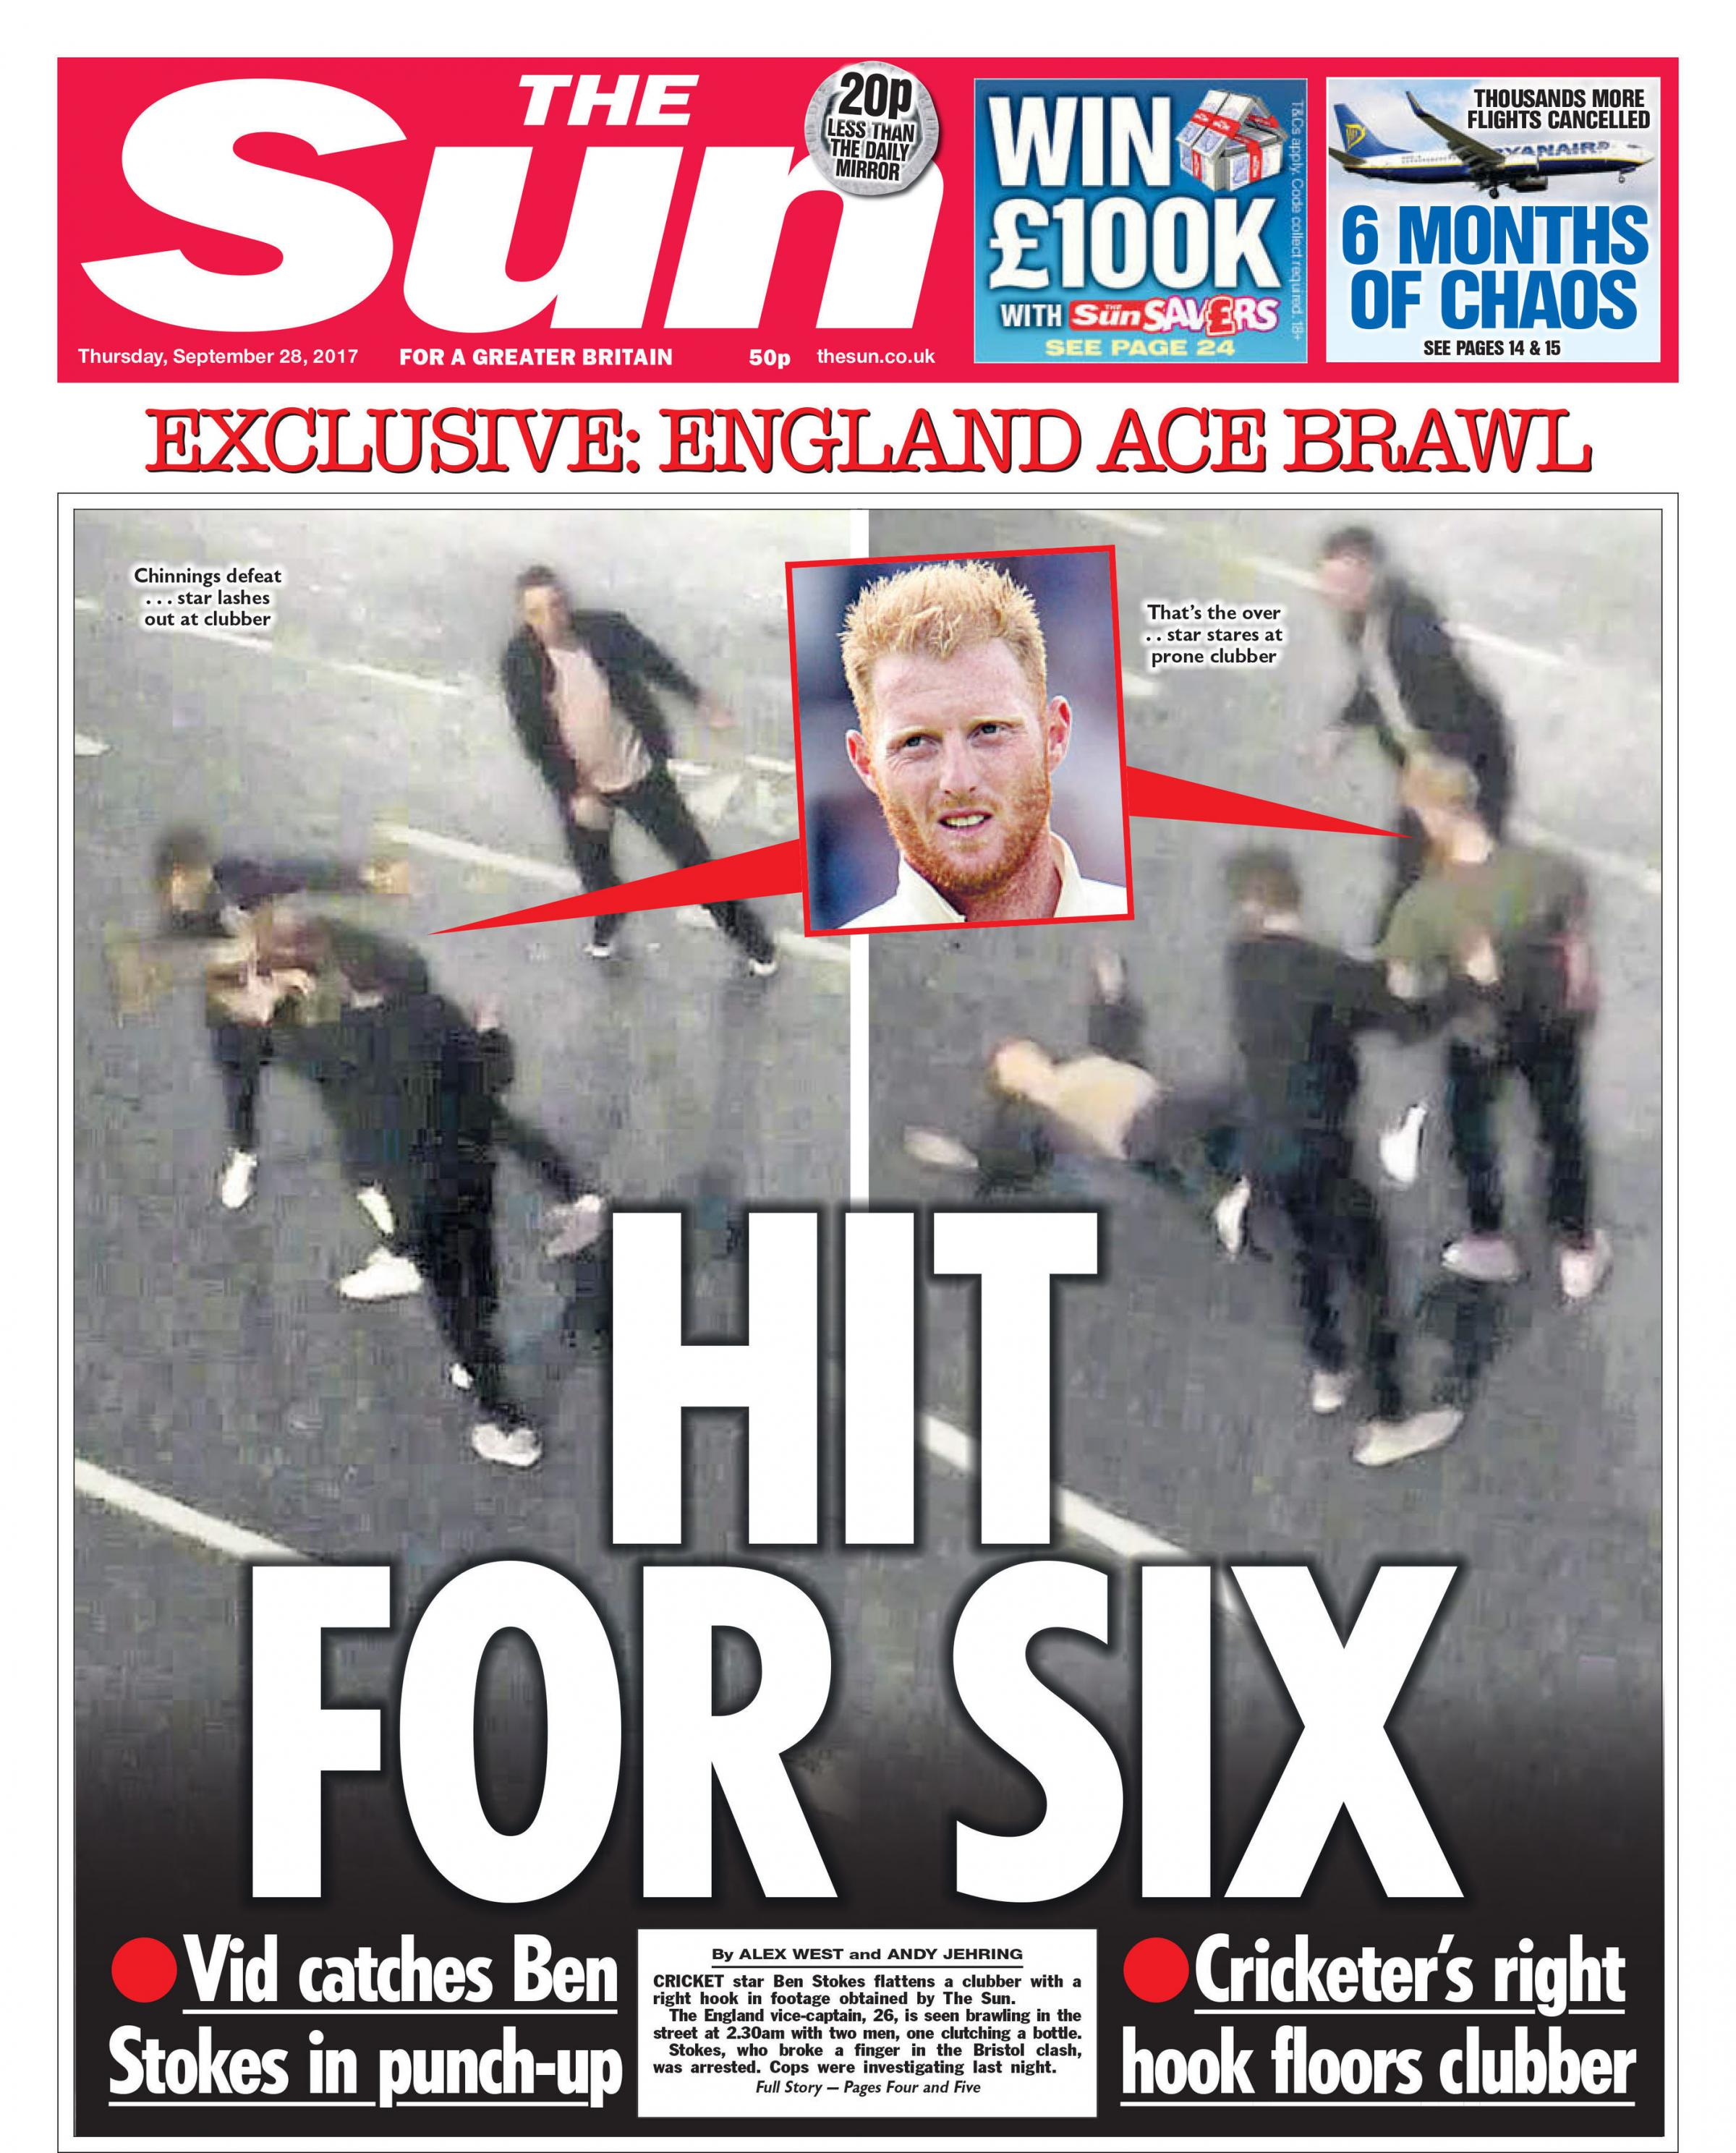 The front page of The Sun which features images showing England cricketer Ben Stokes allegedly throwing punches in a street fight. Picture: PA